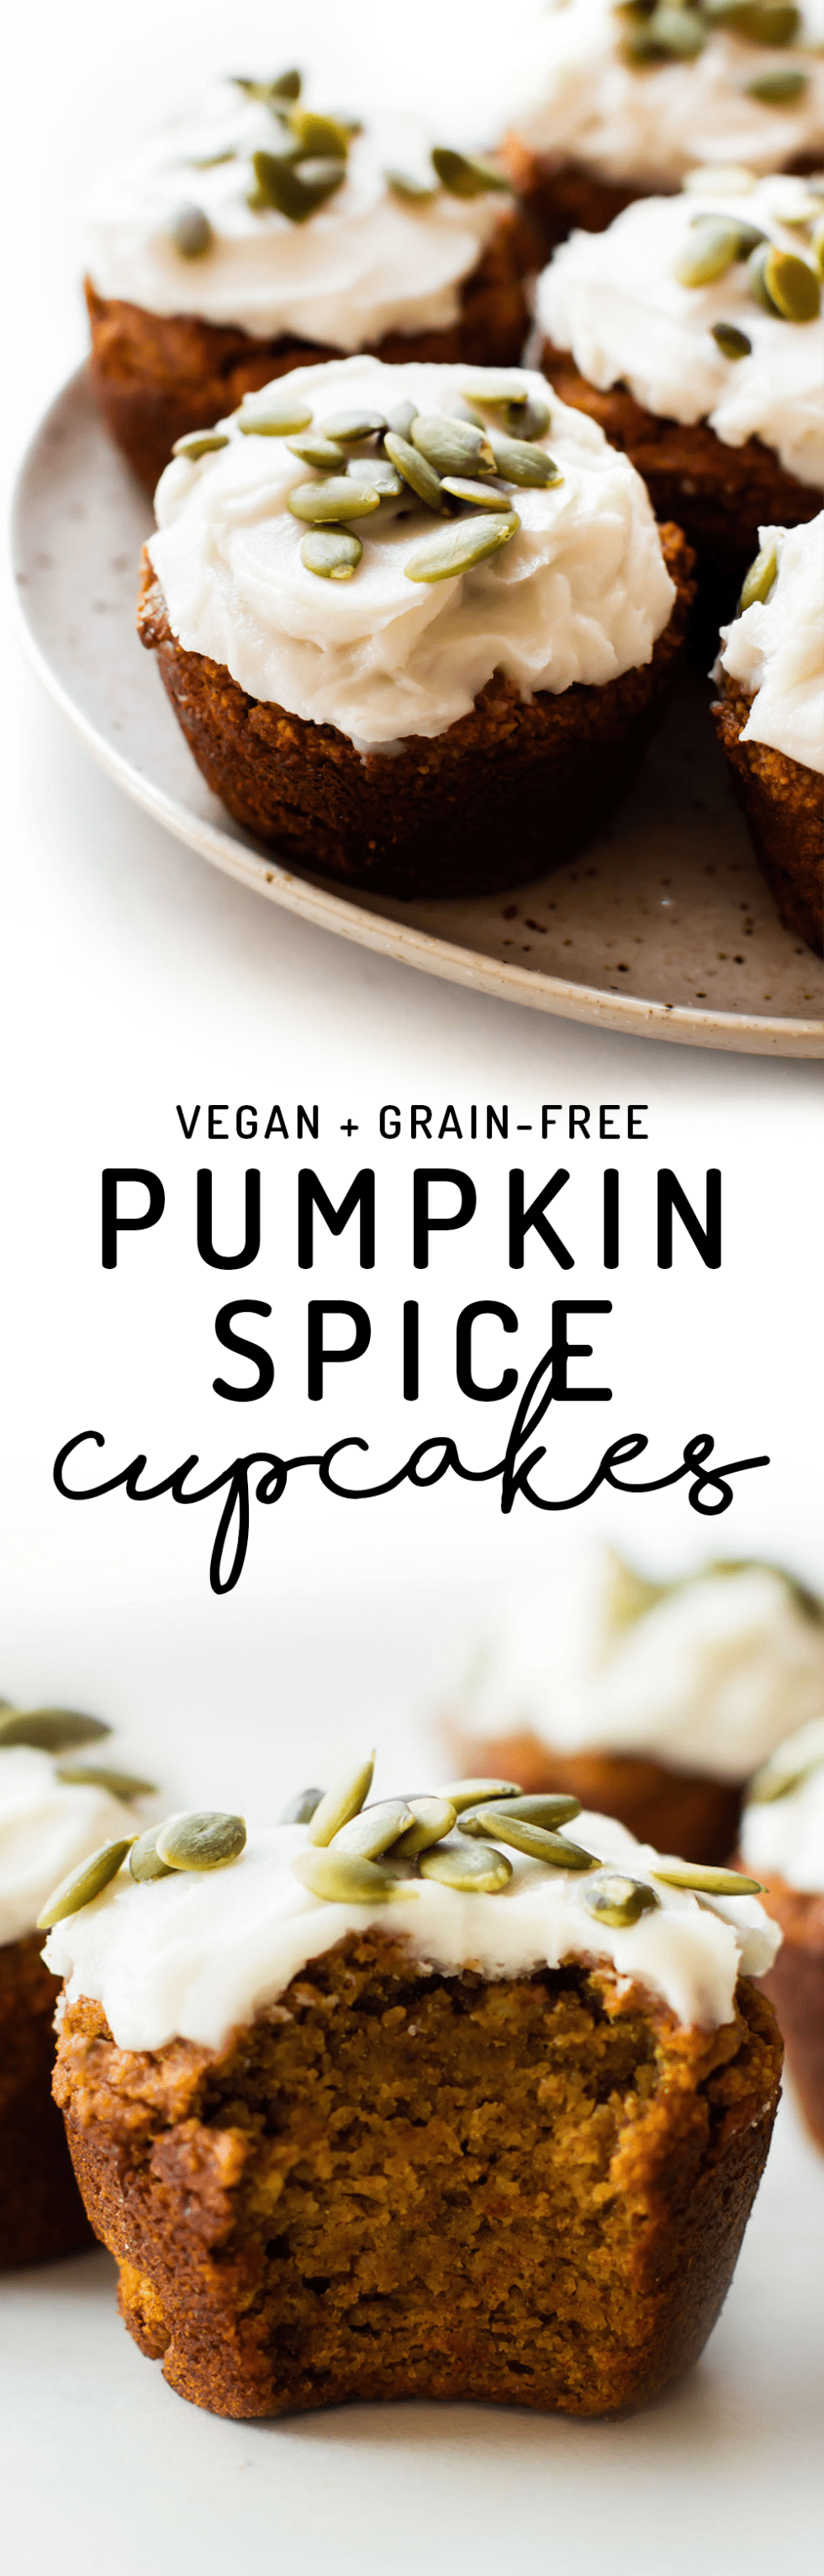 Cupcakes or muffins – either way this grain-free date-sweetened recipe is the perfect pumpkin spice snack or frosted treat! #vegan #paleo